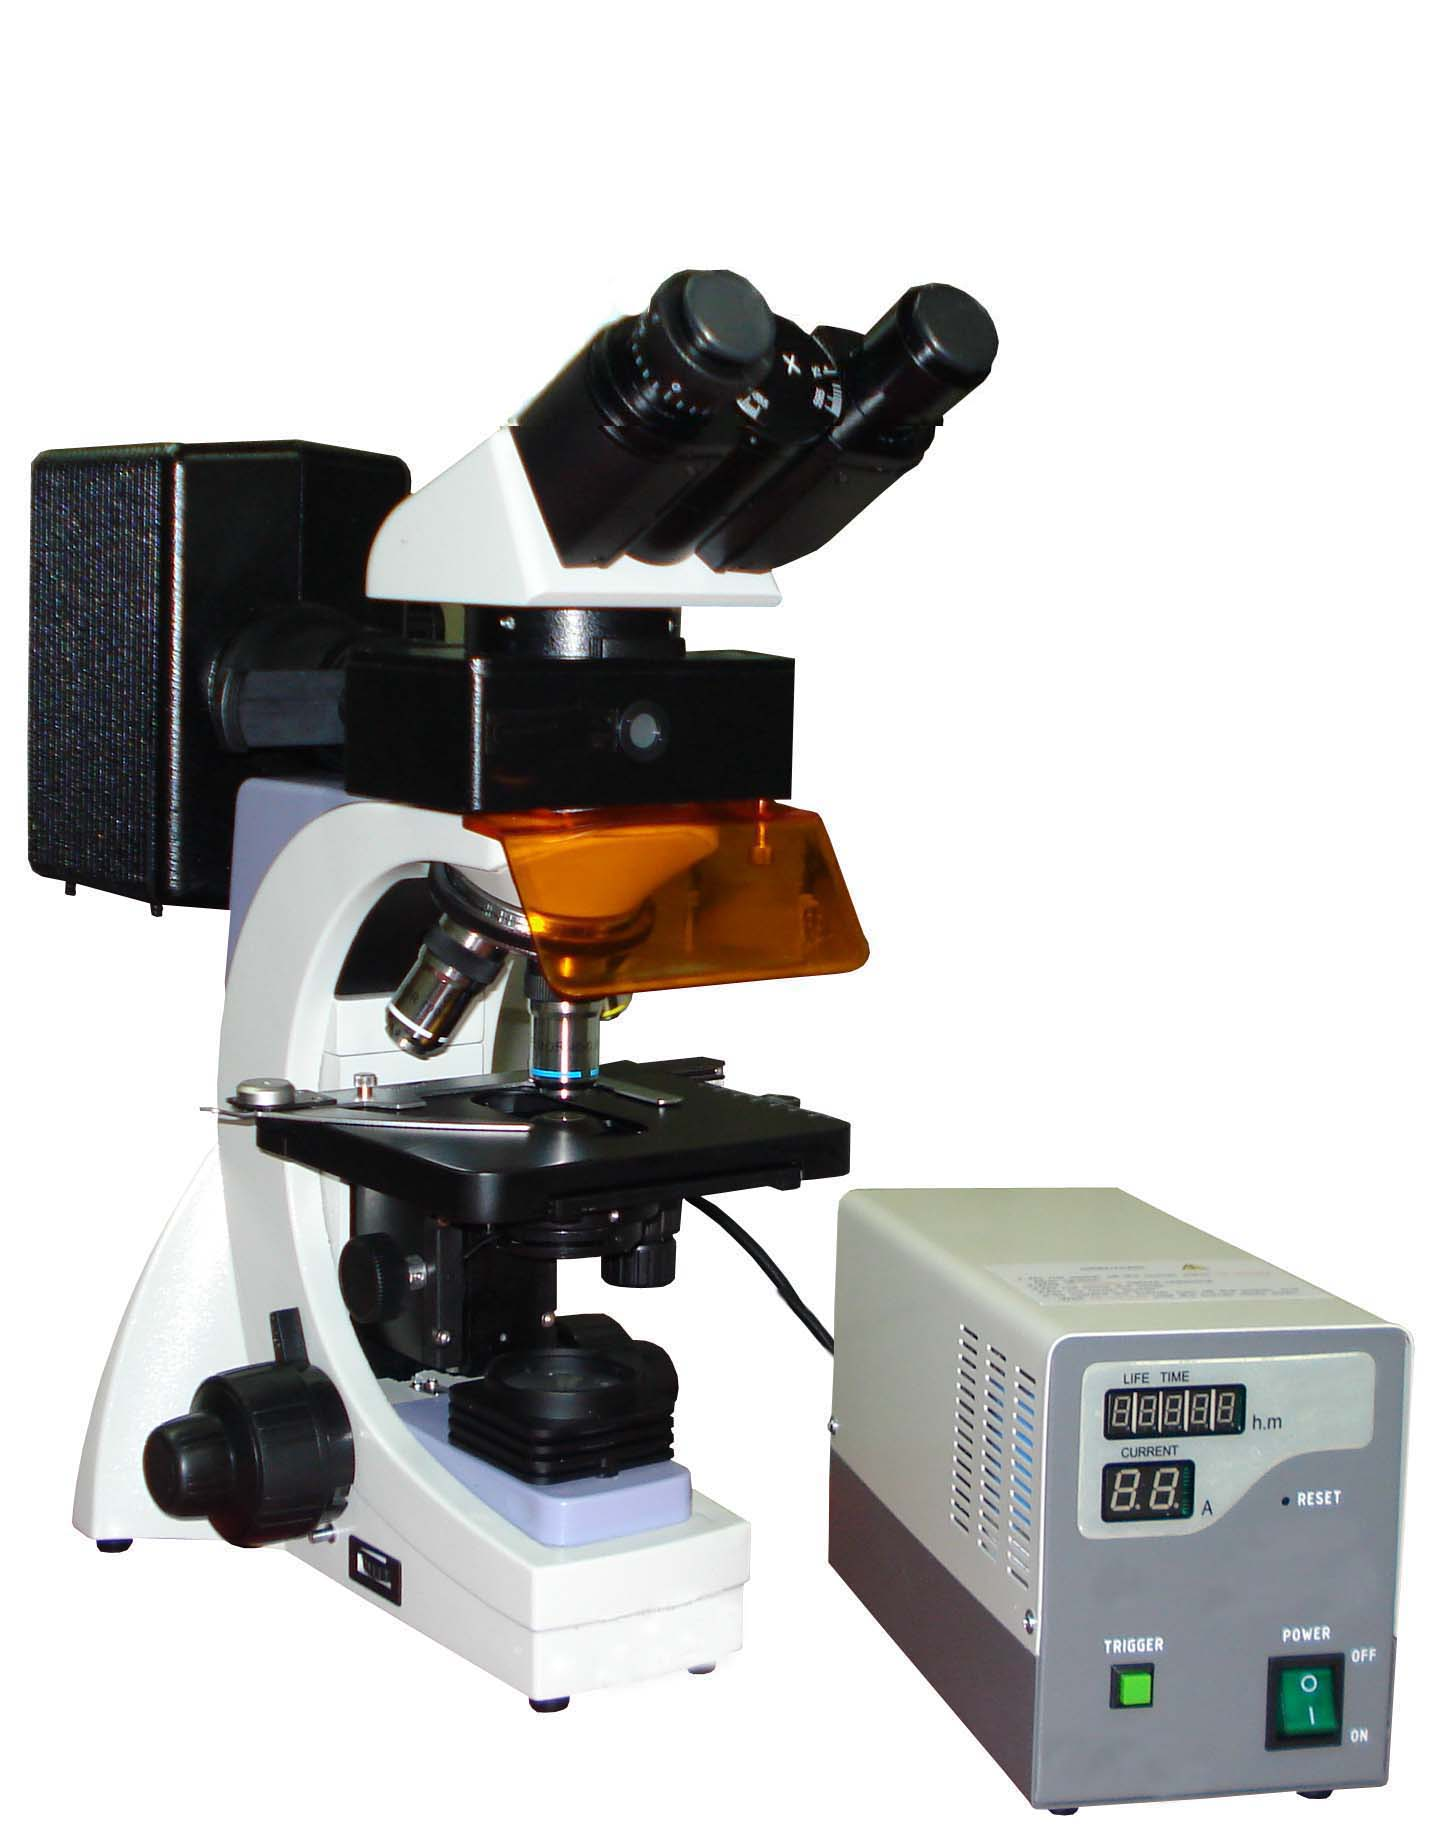 Fluorescence Microsopy Fluorescent Microscope Manufacturer Supplier Ac Dc Low Voltage Power Supply In Ambala Cantt Haryana India Hl 23 With Flm 202